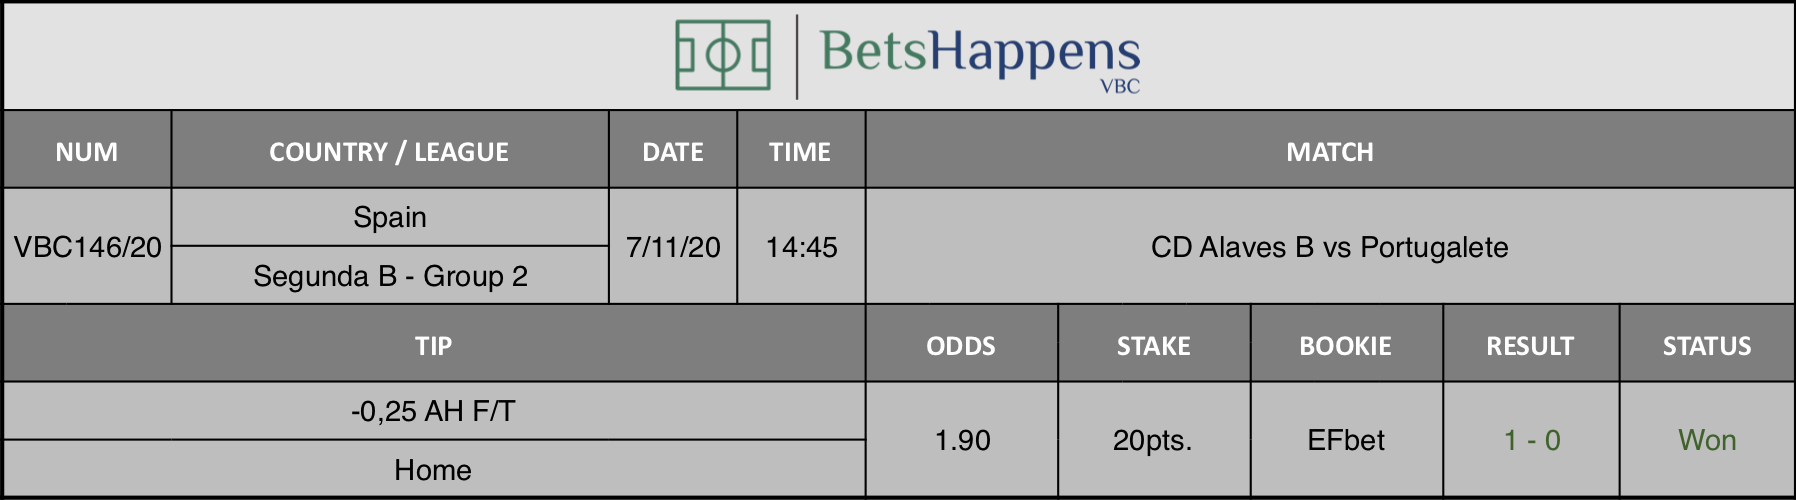 Results of our tip for the CD Alaves B vs Portugalete match where -0,25 AH F/T Home is recommended.